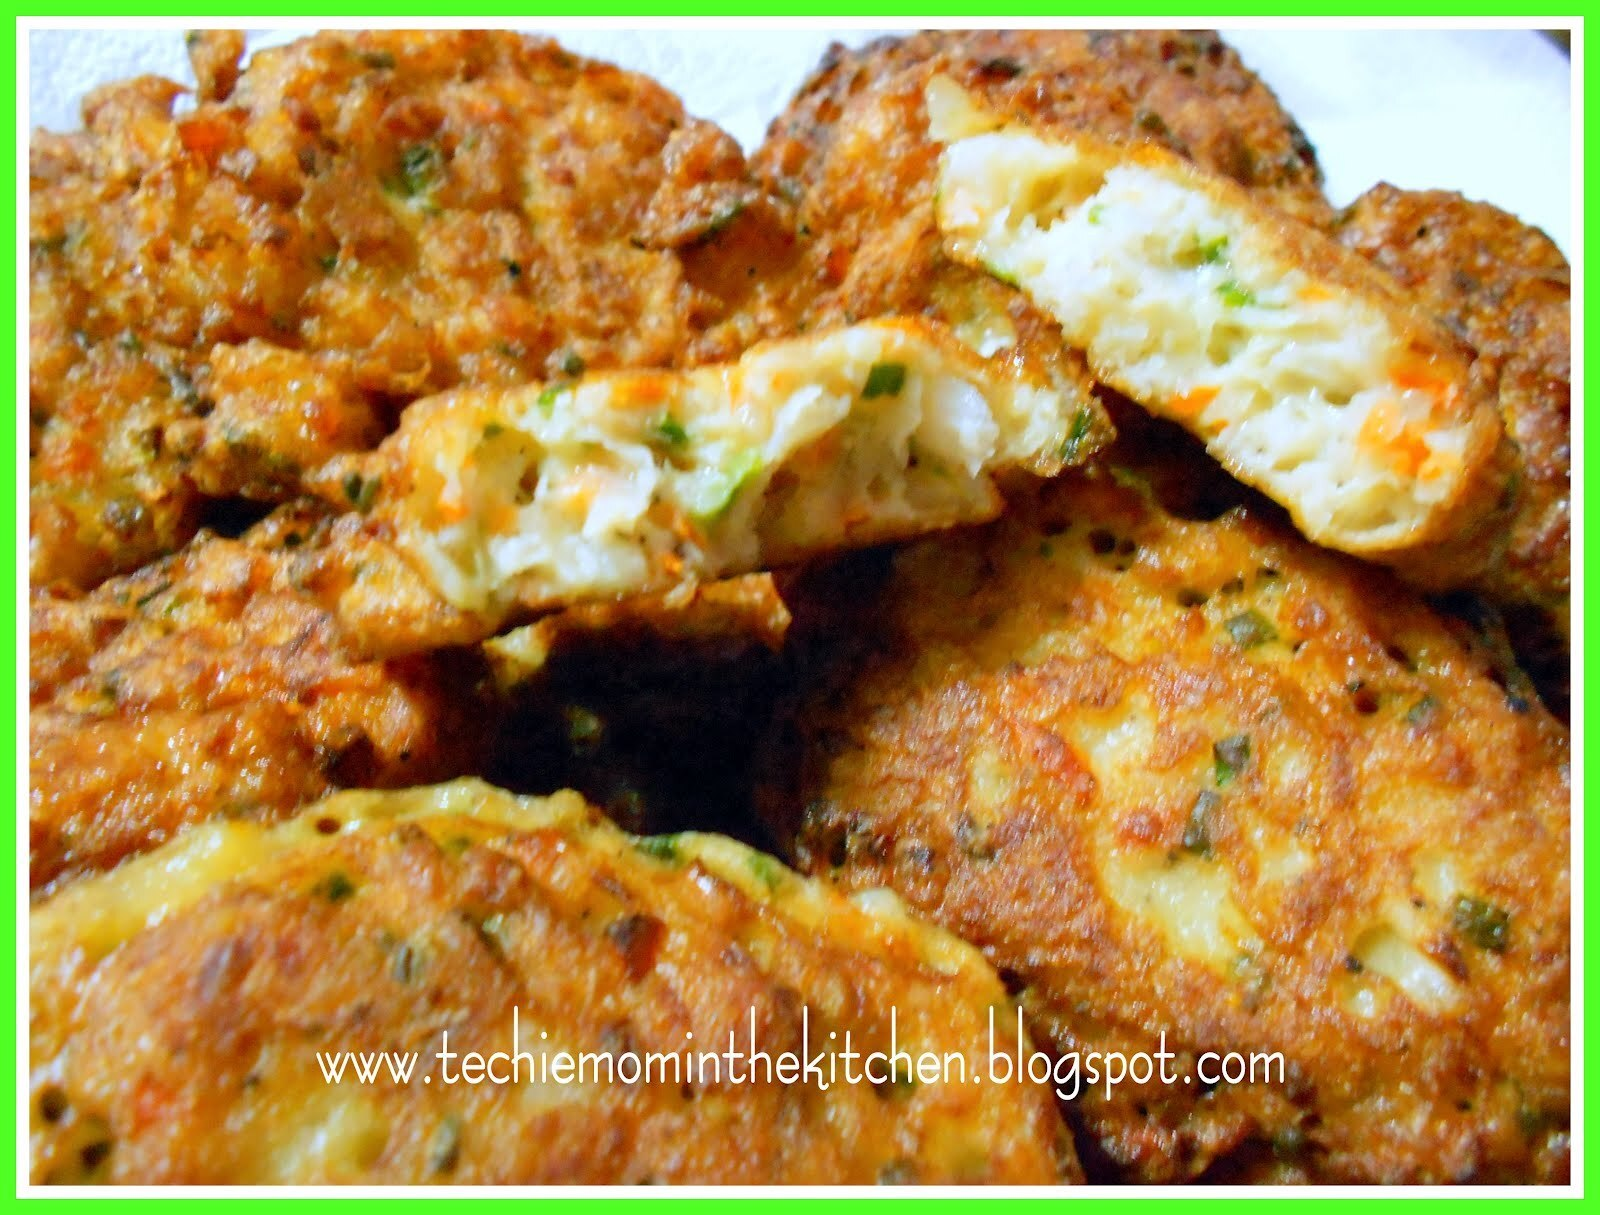 CREAM DORY FISH PATTIES with GARLIC-MAYO DIP